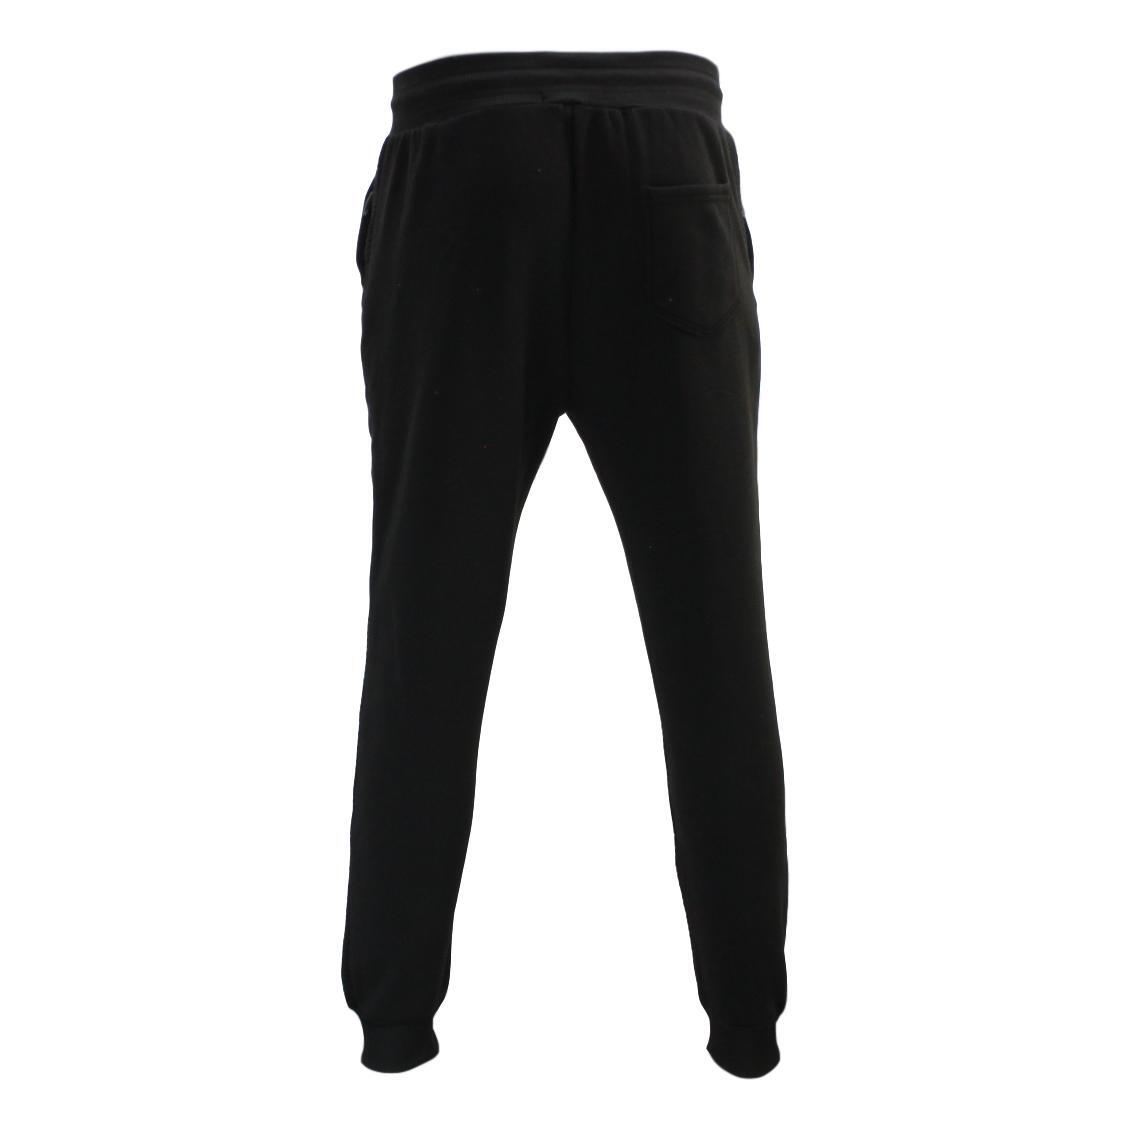 Men-039-s-Unisex-Jogger-Track-Pants-Casual-Gym-Zipped-Pockets-Slim-Cuff-Trousers thumbnail 5